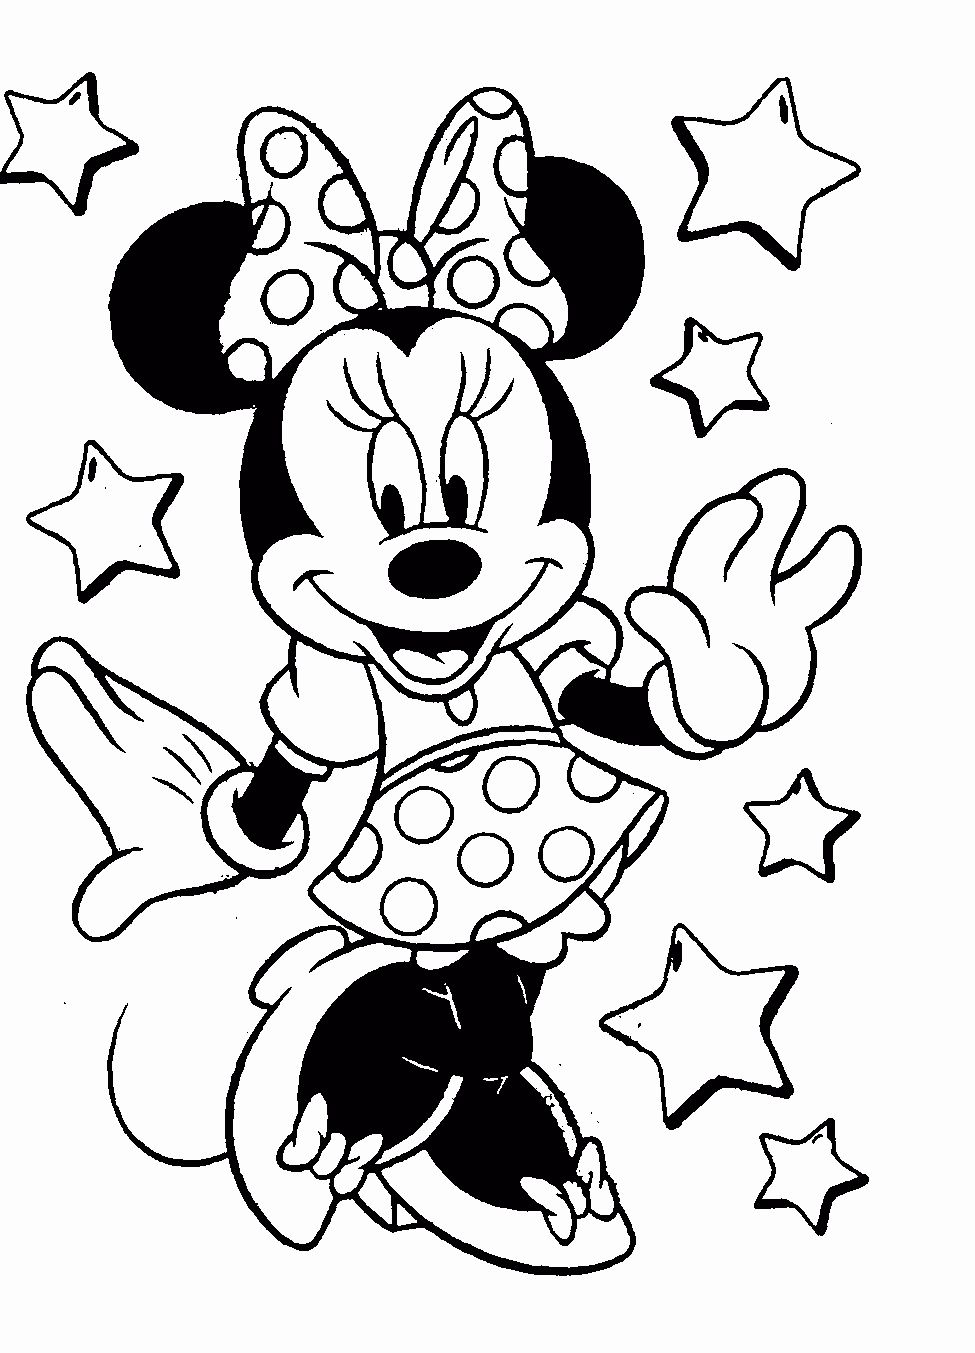 Coloring Pages For Kids To Print Disney Free Disney Coloring Pages Minnie Mouse Coloring Pages Mickey Mouse Coloring Pages